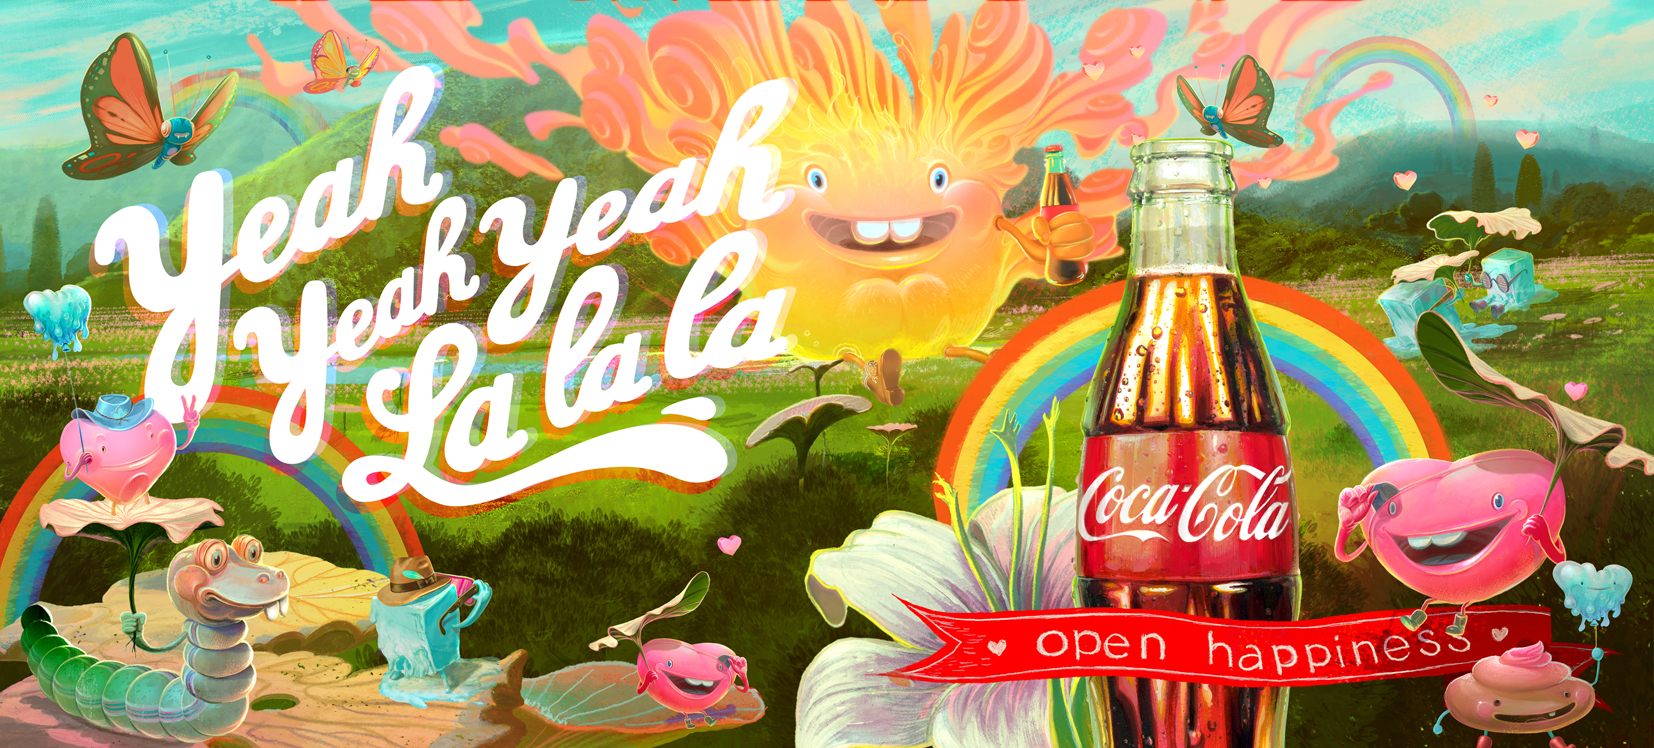 Coke Yeah Yeah Yeah La La La - Melt Alternative